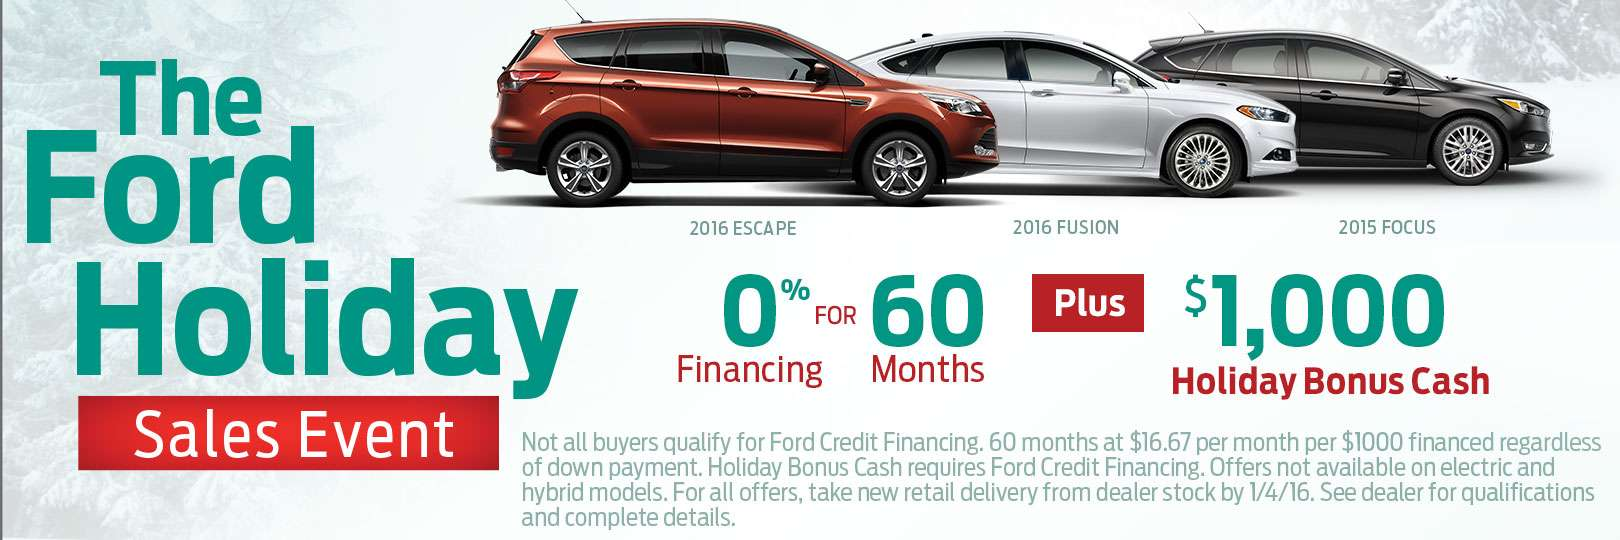 Ford Holiday Sales Event Chicago Illinois | Fox Ford Lincoln